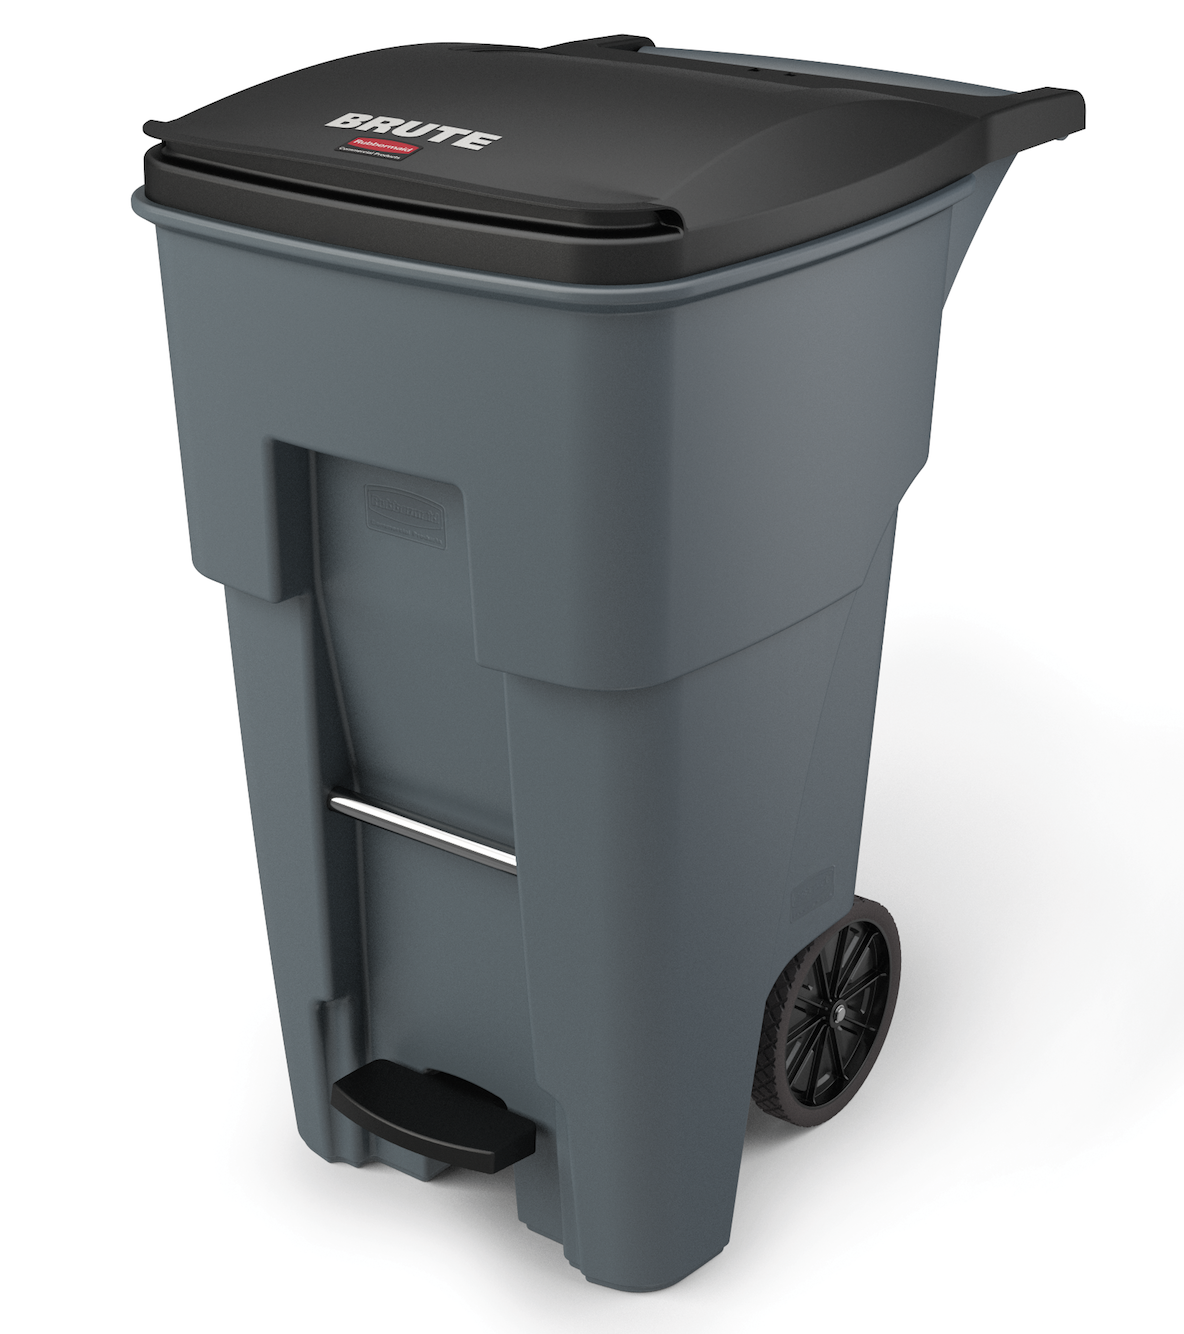 Rubbermaid 1971968 Brute Step On Rollout Container 65 Gallon Gray Outdoor Waste Receptacles